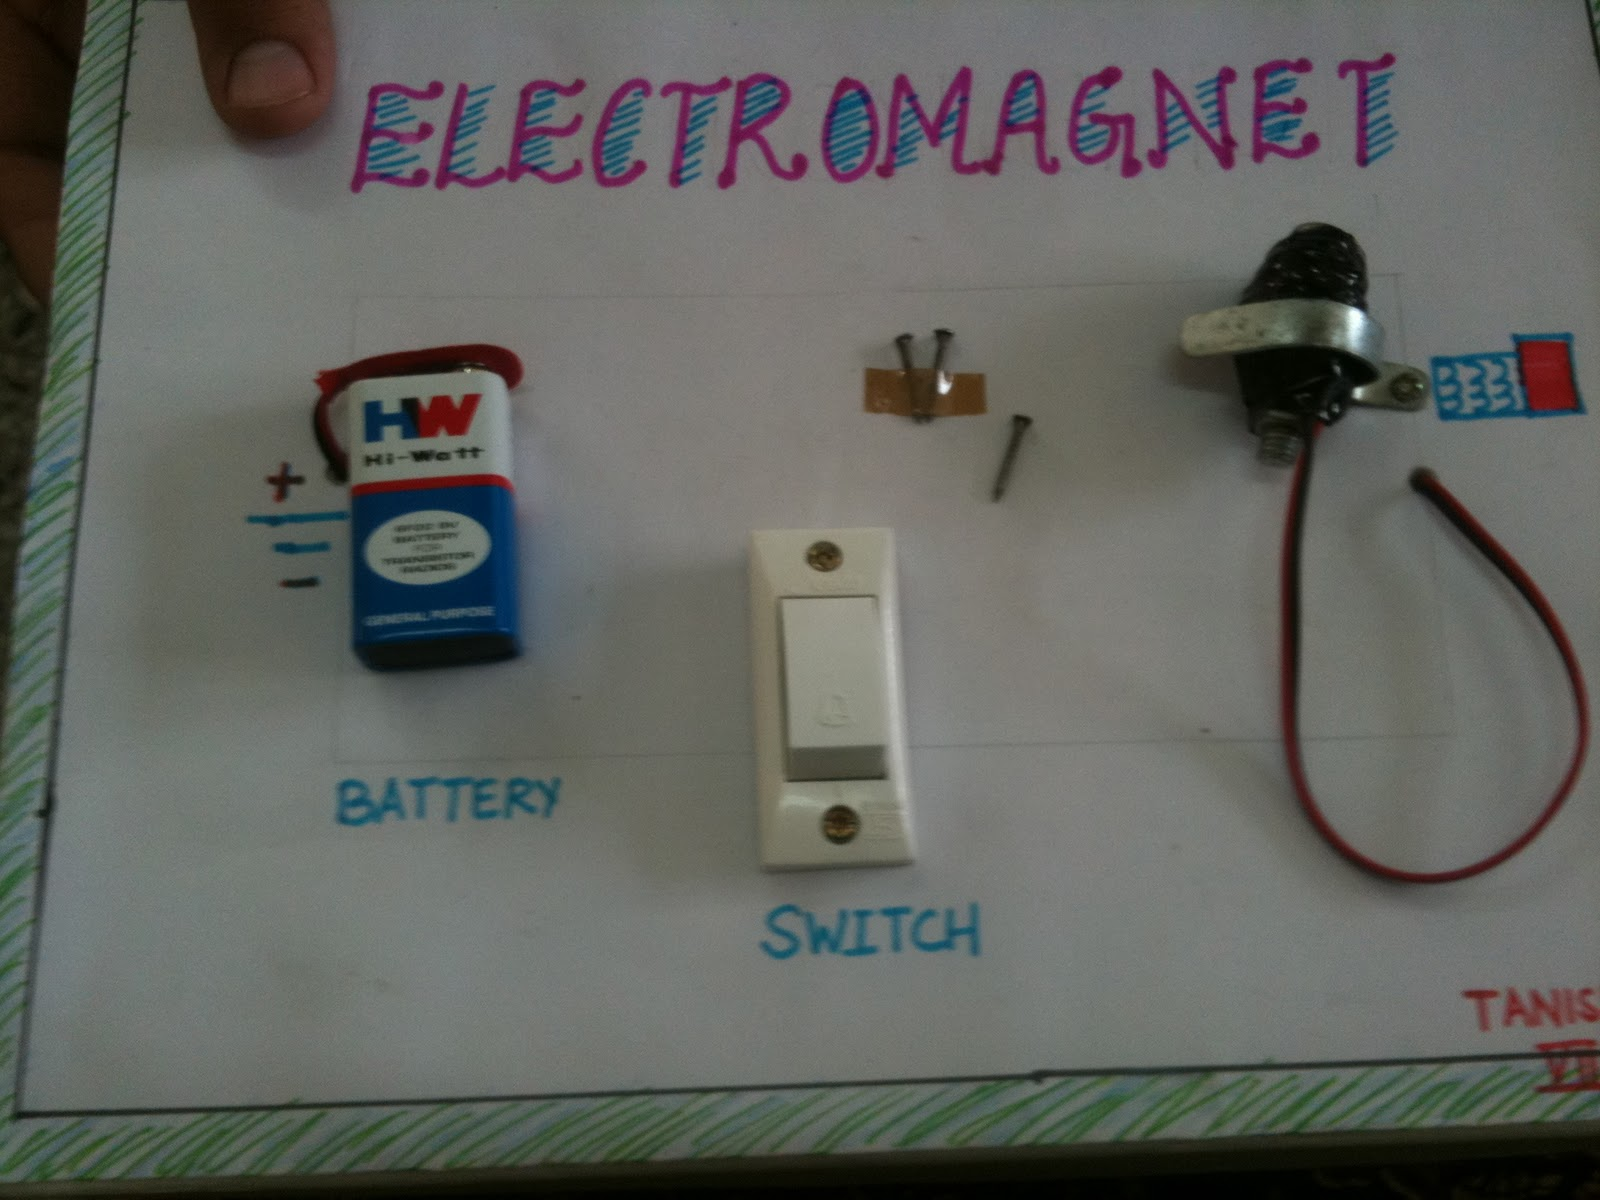 Http Bbpsrohini Blogspot Com 2011 11 Model On Electromagnet By Tanish Sharma Html